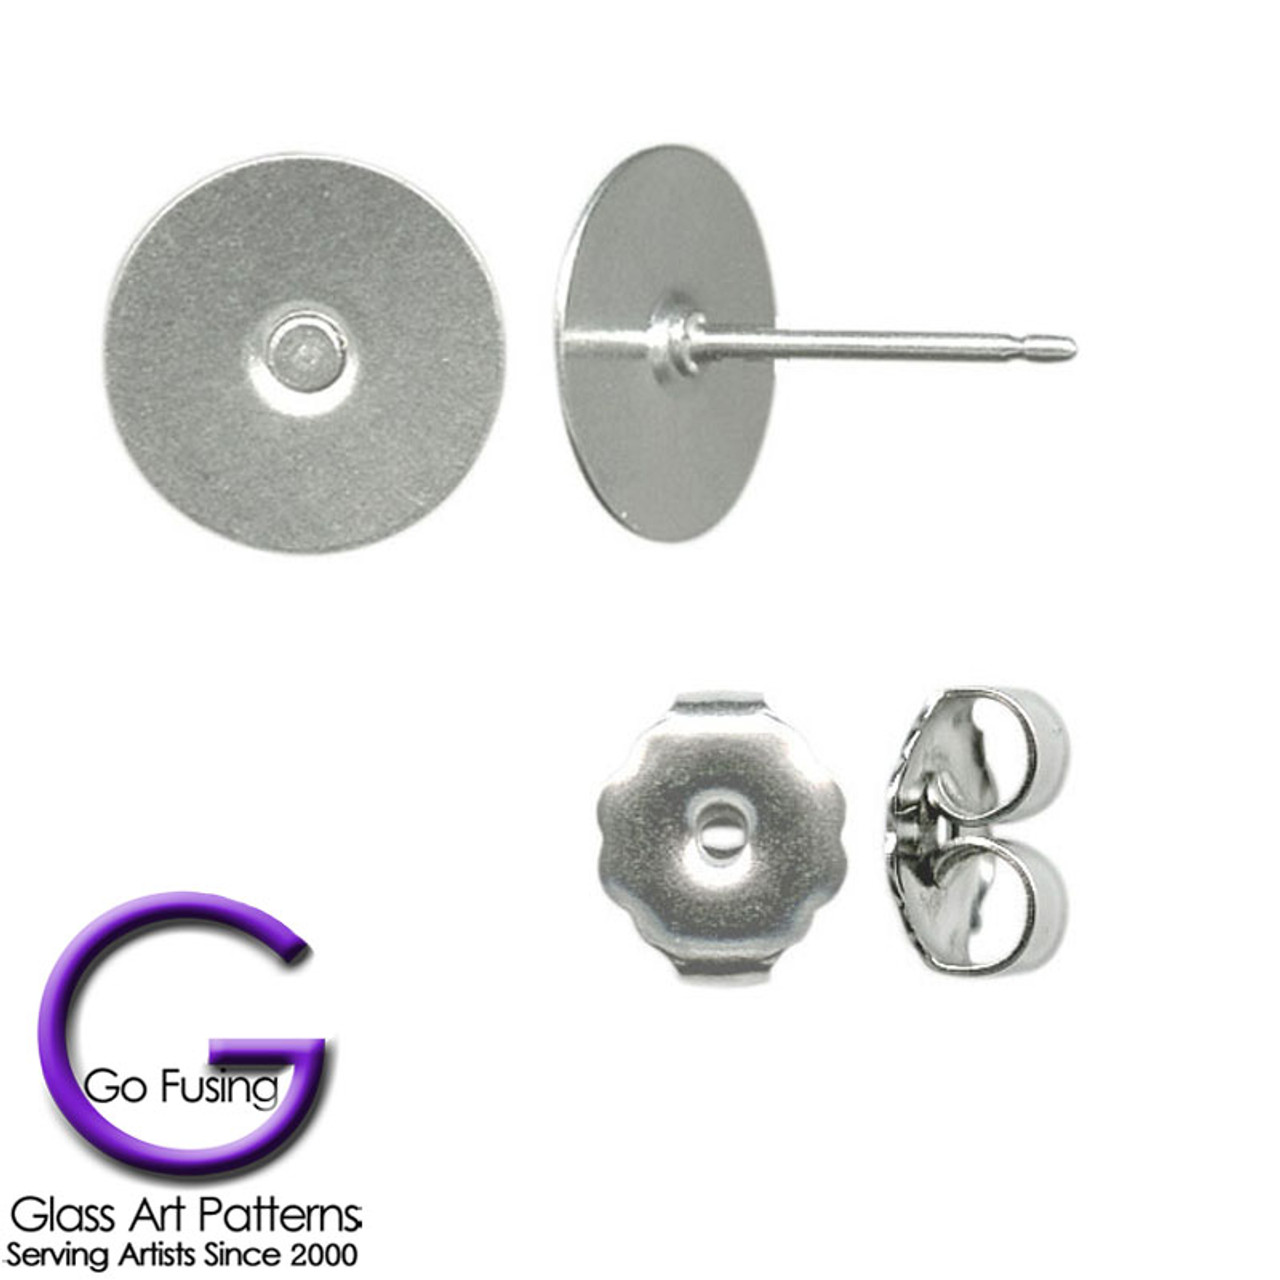 10.4mm Long 48 Stainless Steel 10mm Earring Posts With or Without Backs